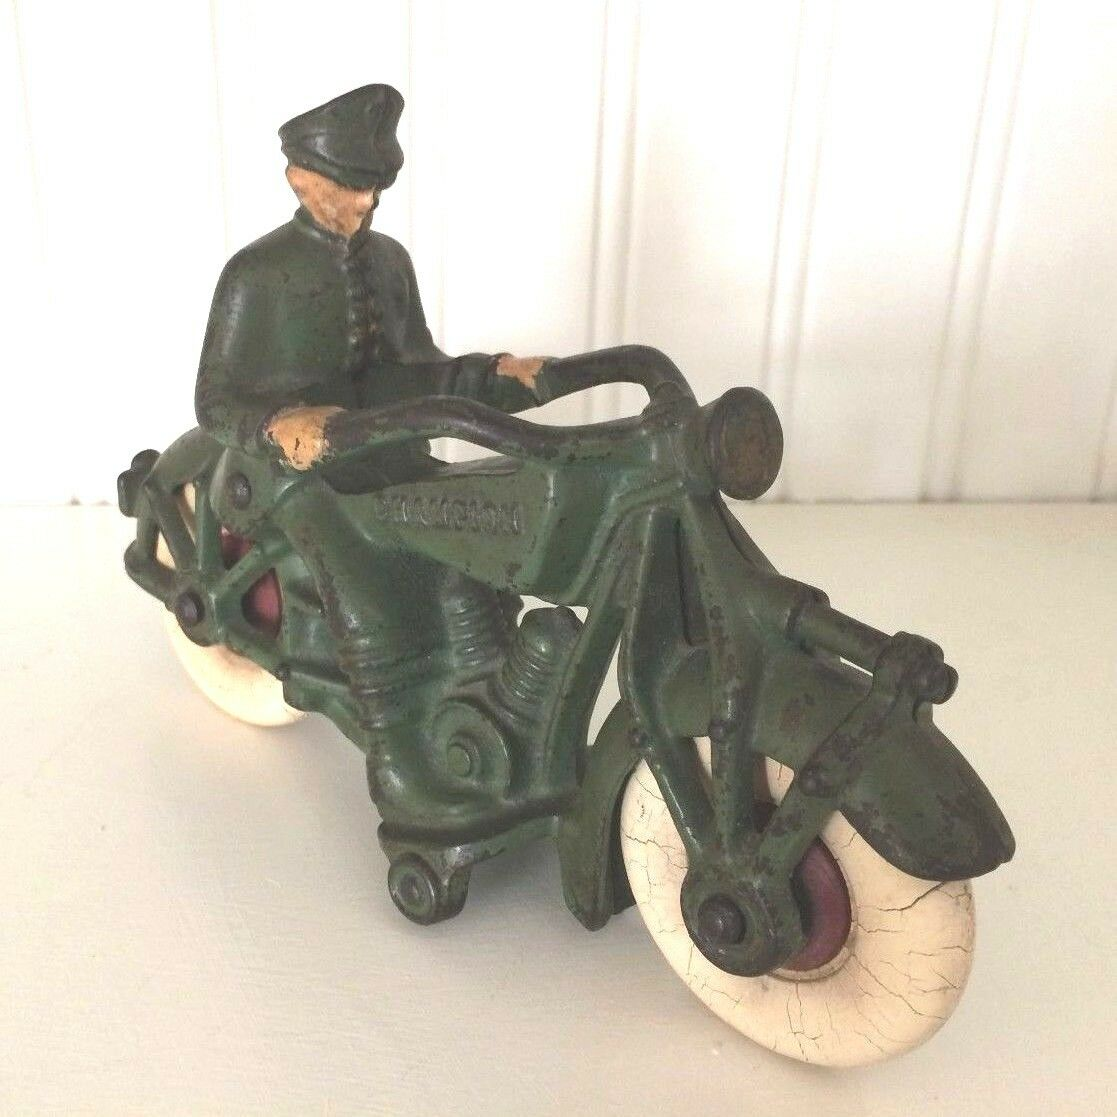 VINTAGE CAST IRON TOY-CHAMPION MOTORCYCLE 7'' POLICEMAN RIDER-ARMY verde-HUBLEY